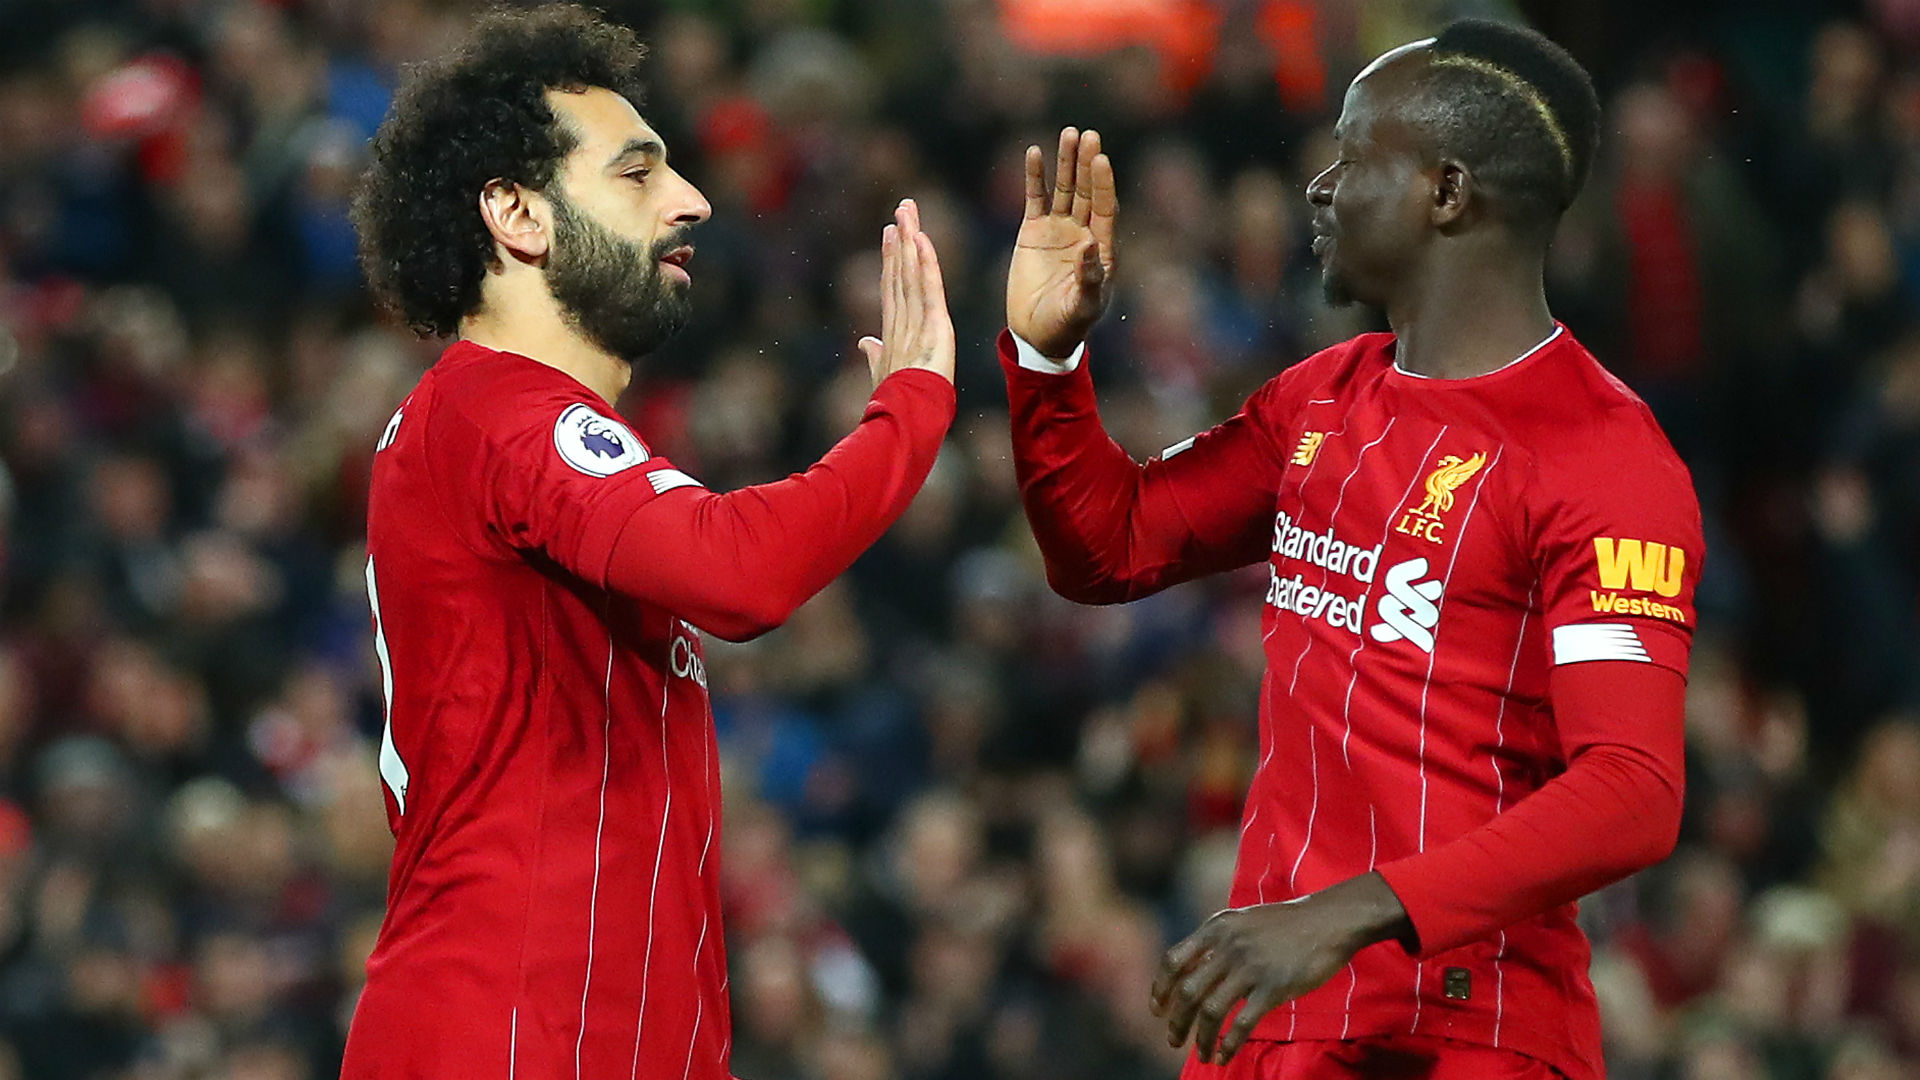 Oblak: More to Liverpool than just Mane, Salah and Firmino